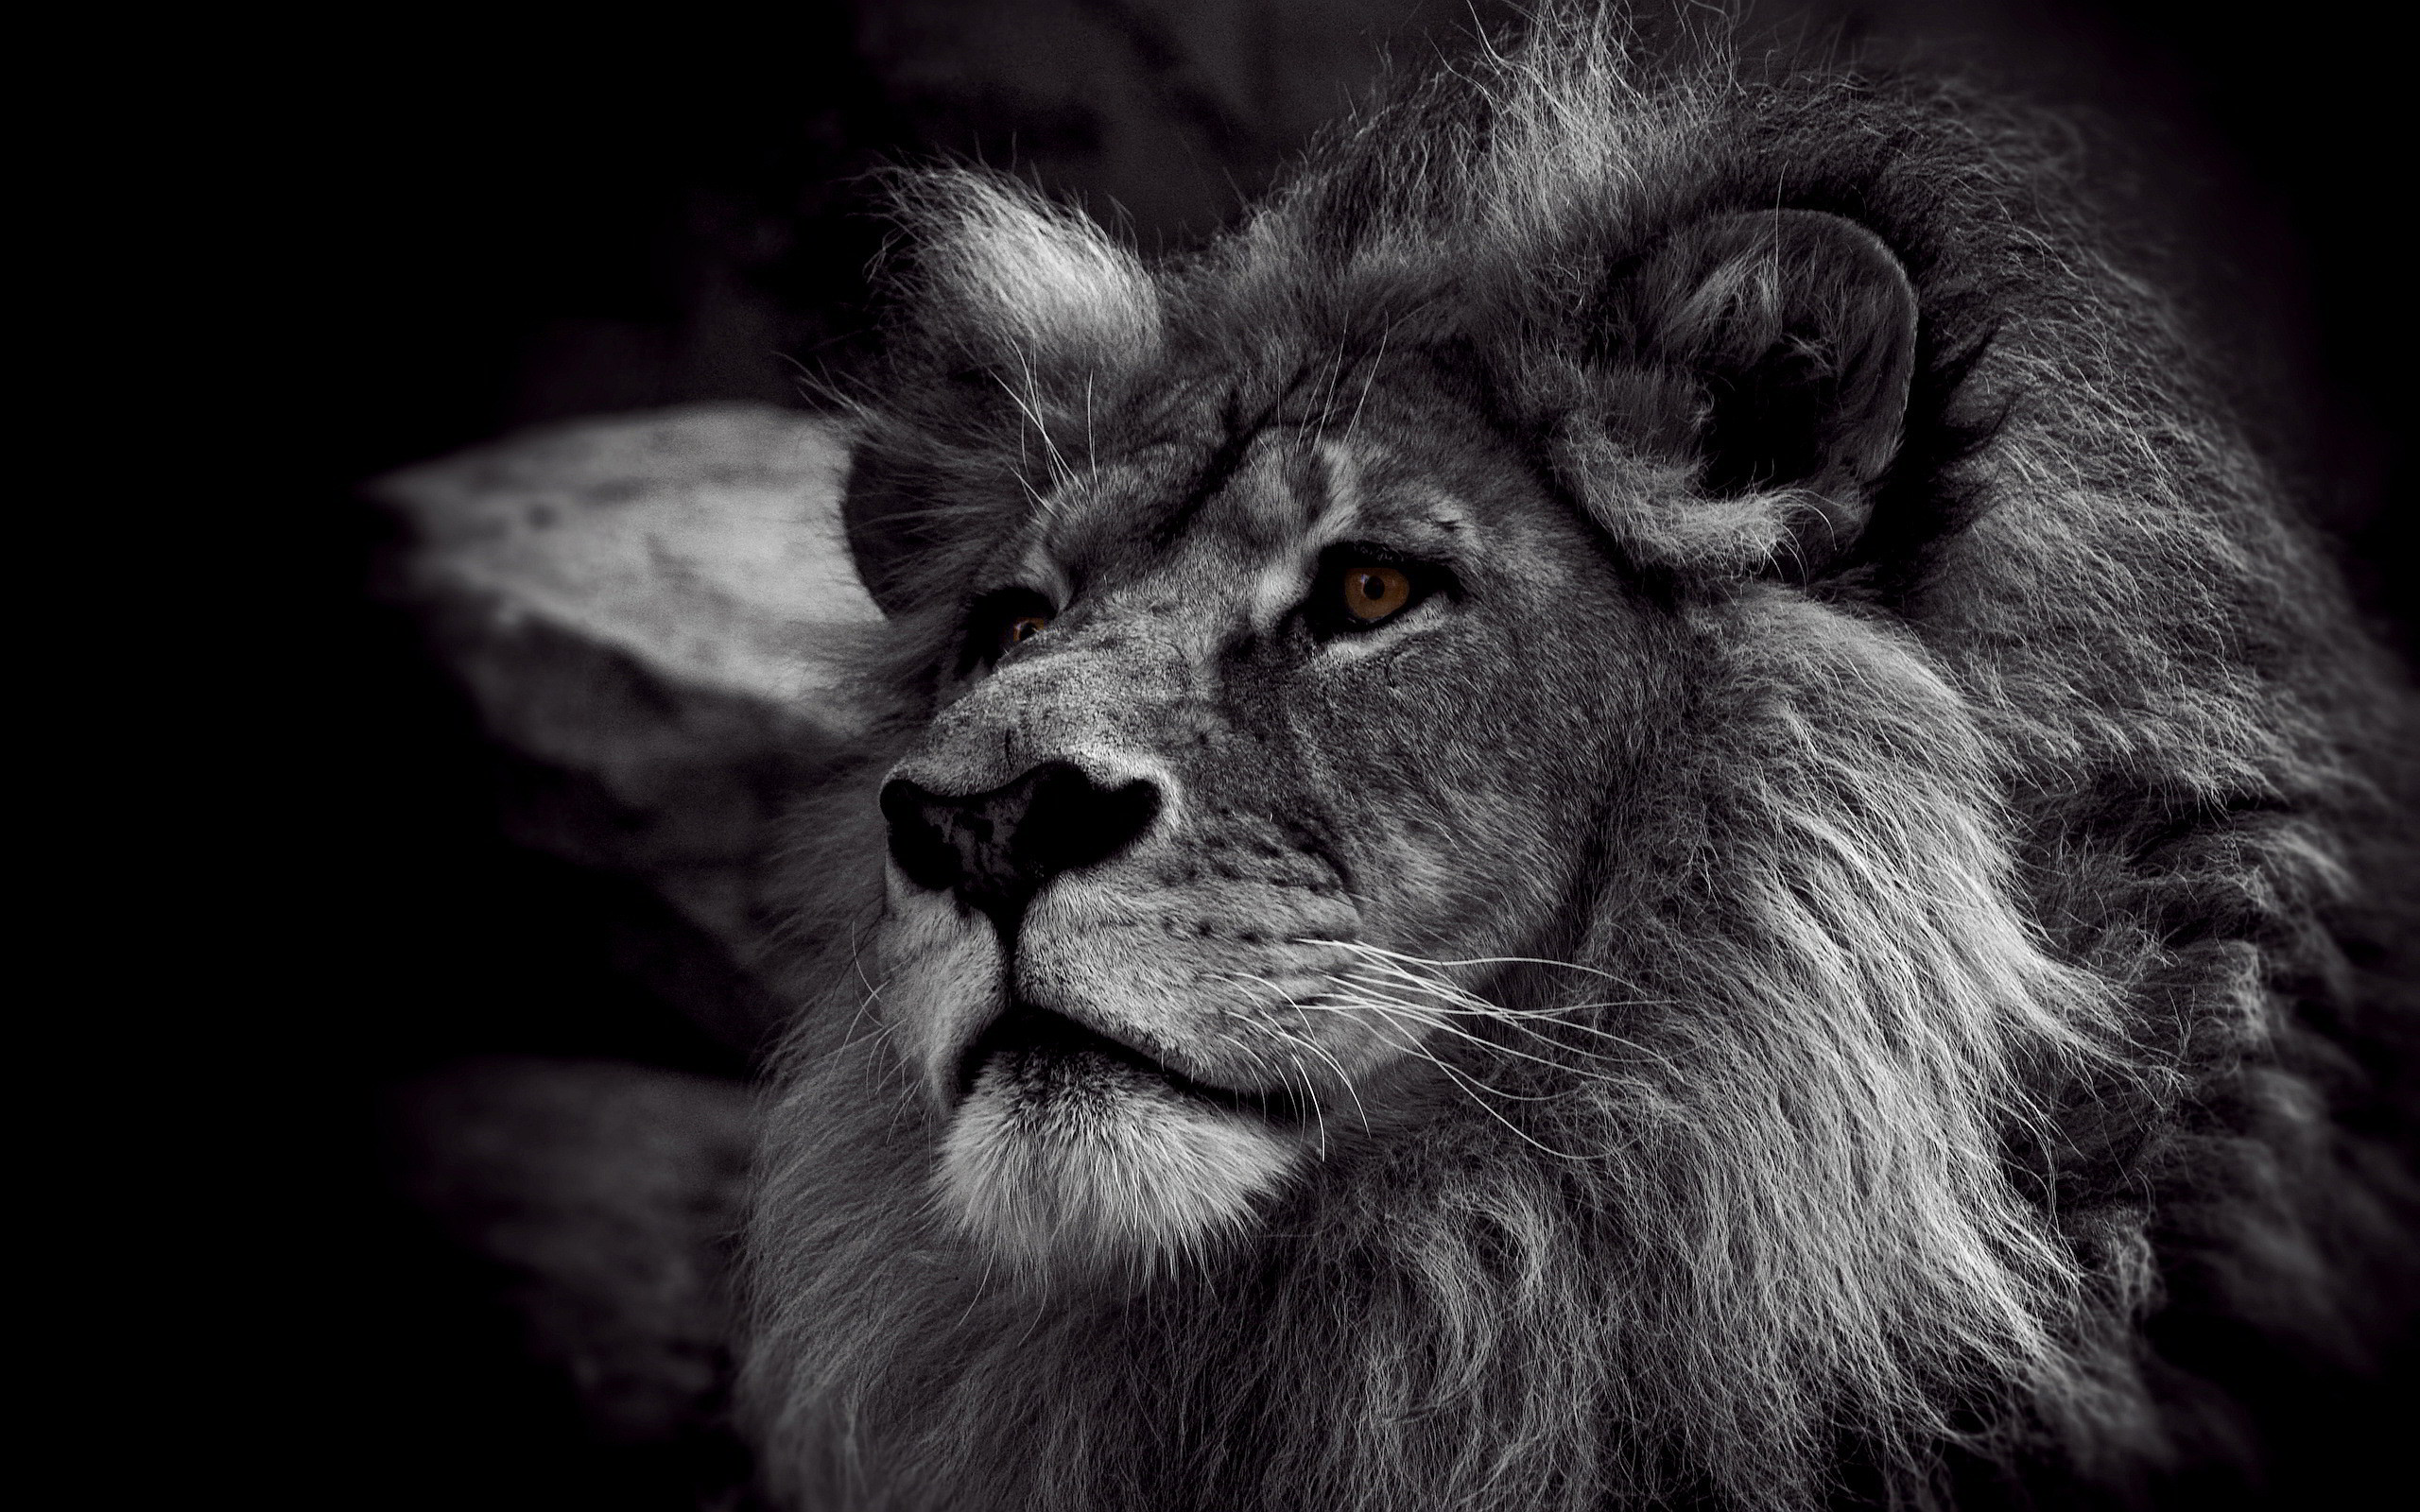 Lion Black And White Wallpapers High Resolution For Desktop Wallpaper 2560  x 1600 px 1.2 MB